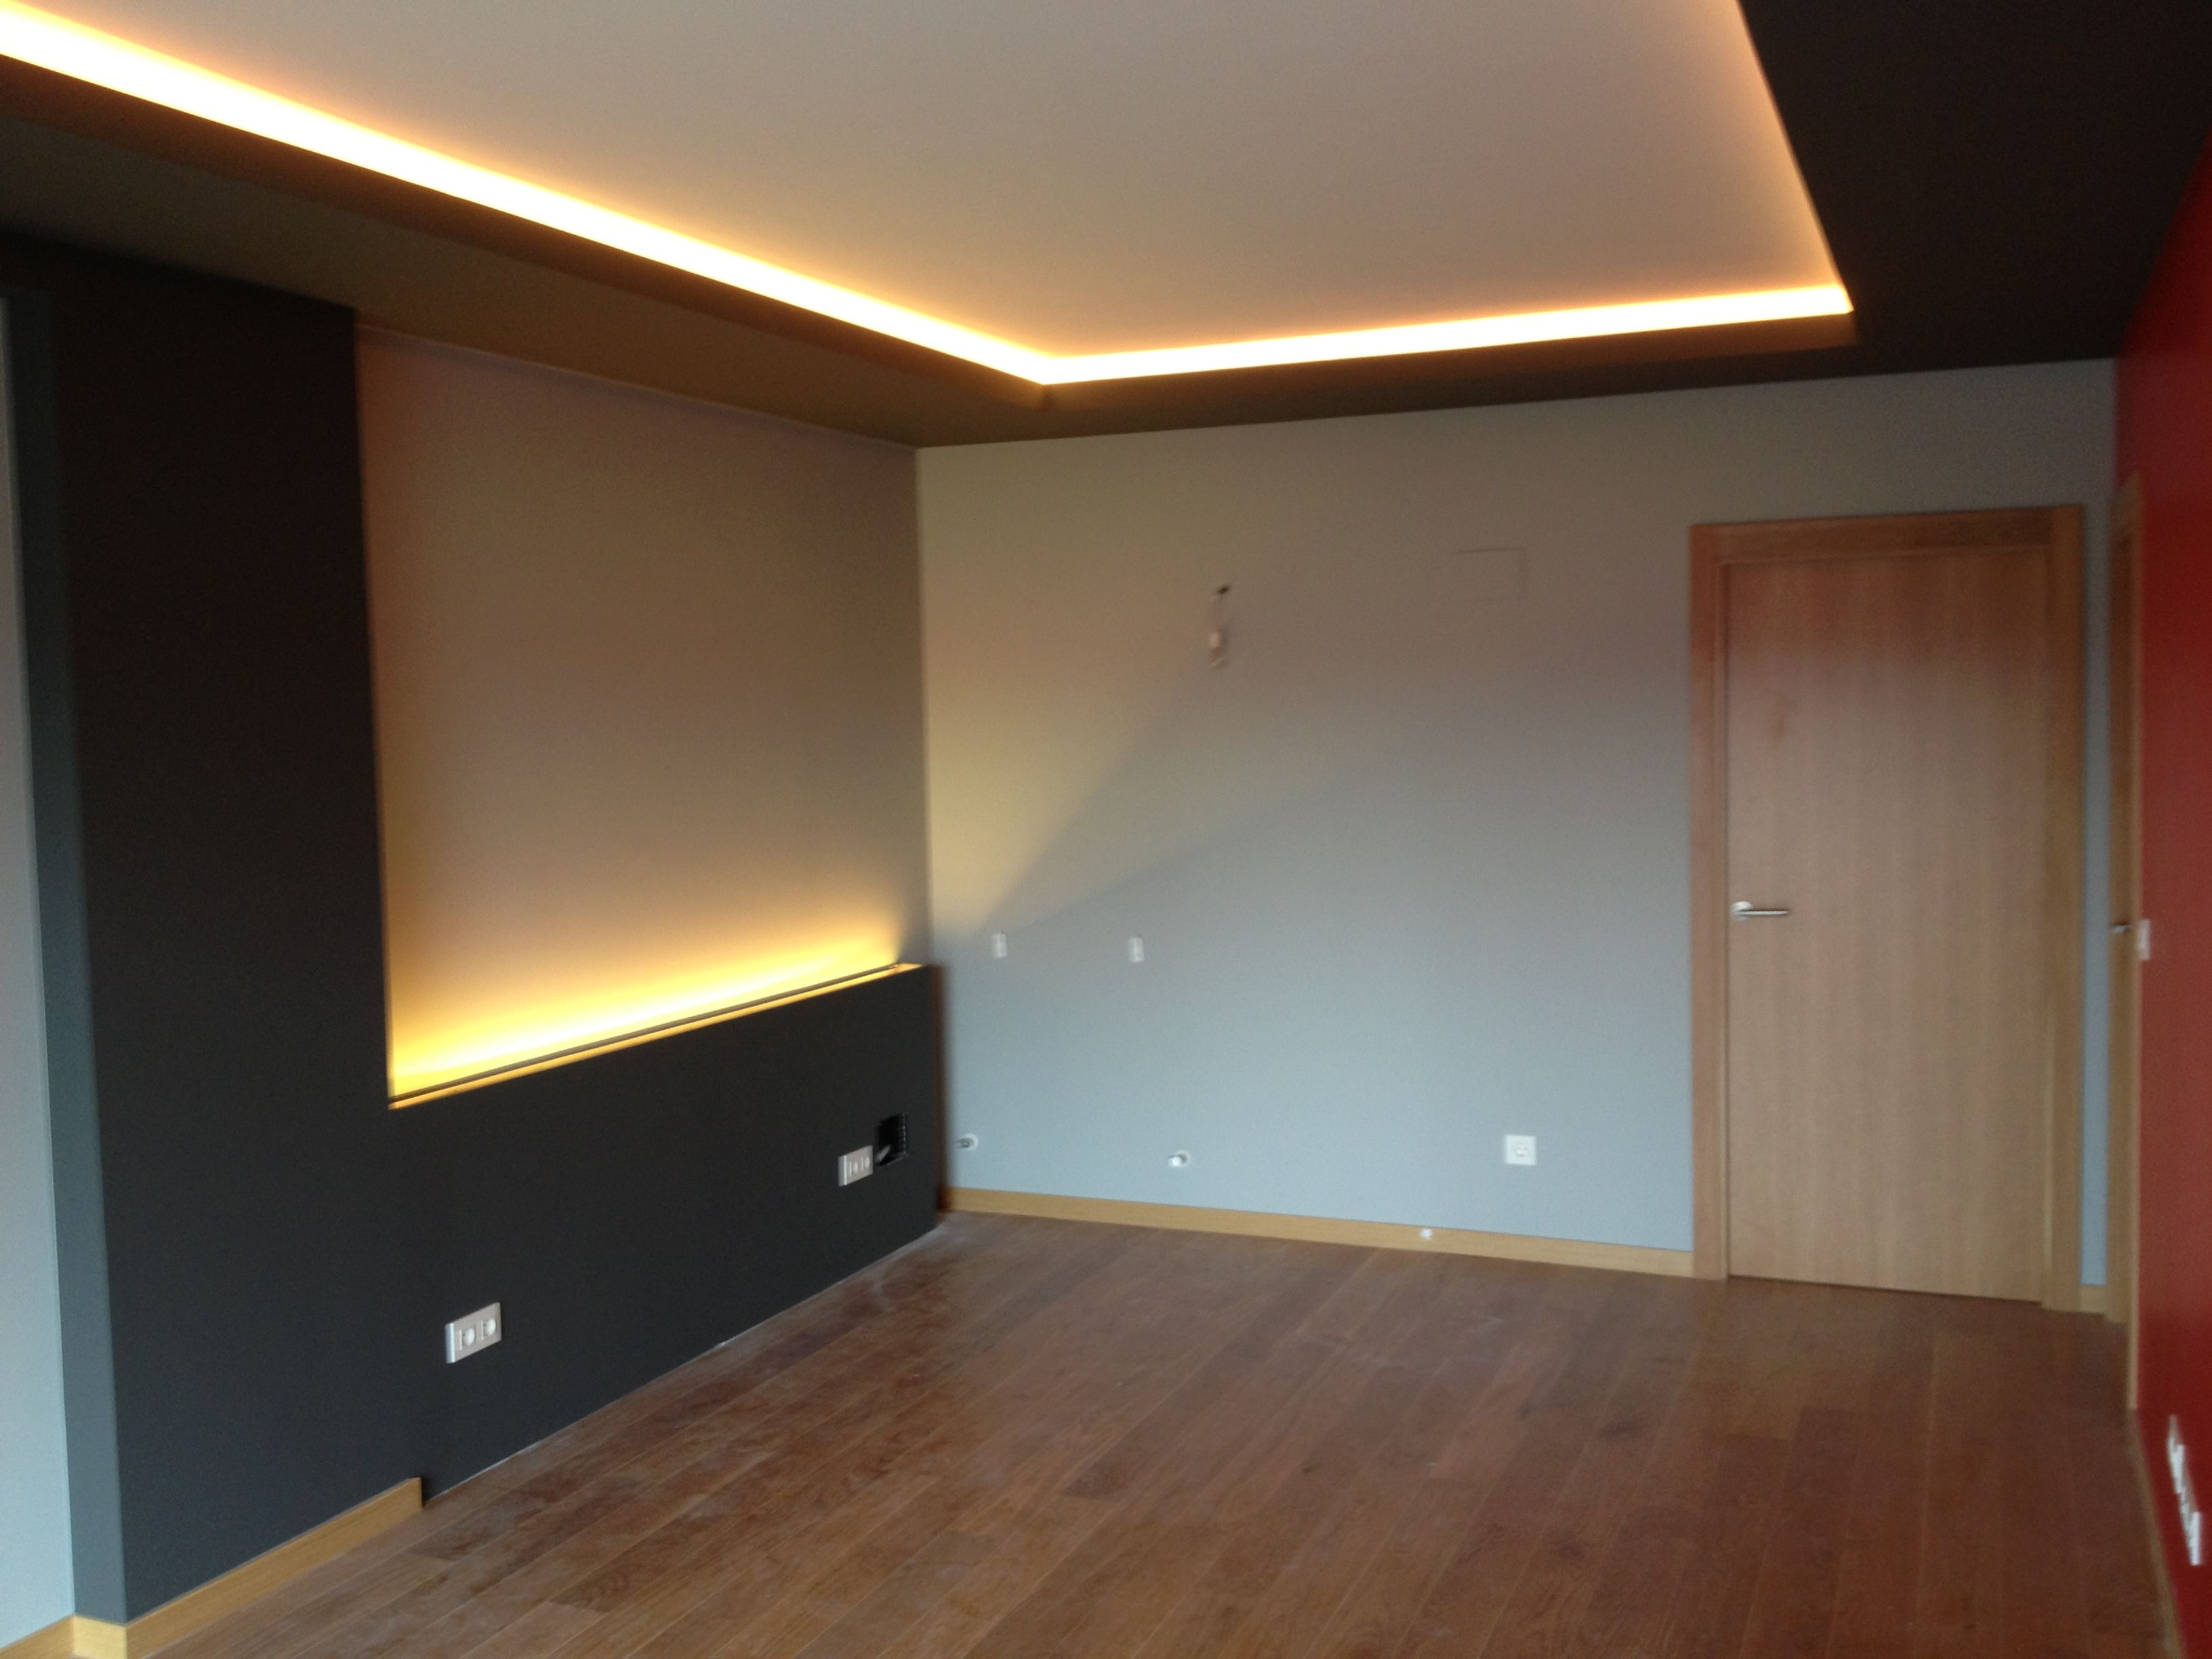 Iluminaci n tiras de led decoraci n del hogar pinterest false ceiling ideas salons and - Ideas iluminacion salon ...